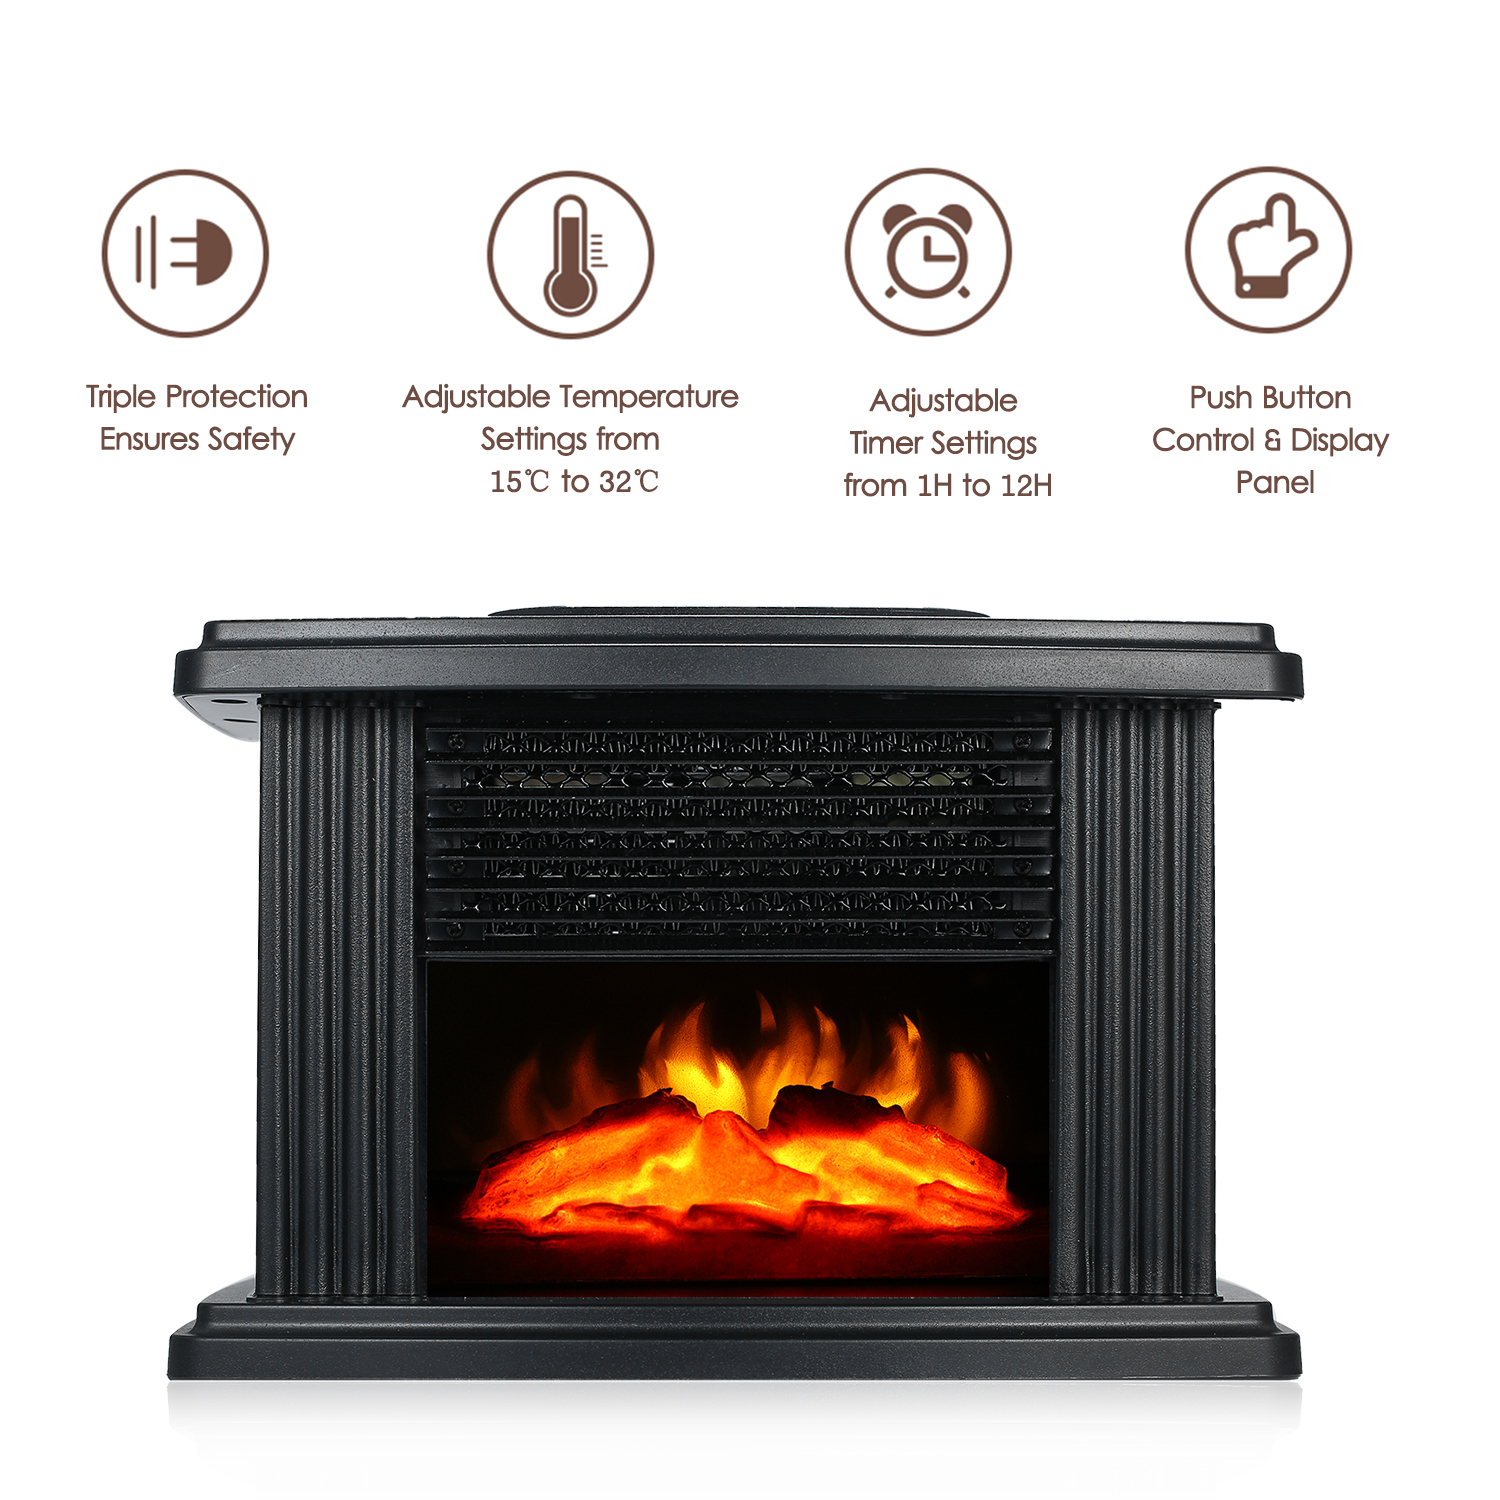 1000W Desktop Electric Fireplace Heater With Log Flame Effect Warm Air Heater Warm Small Warm Air Blower Fan Table Heater 220V